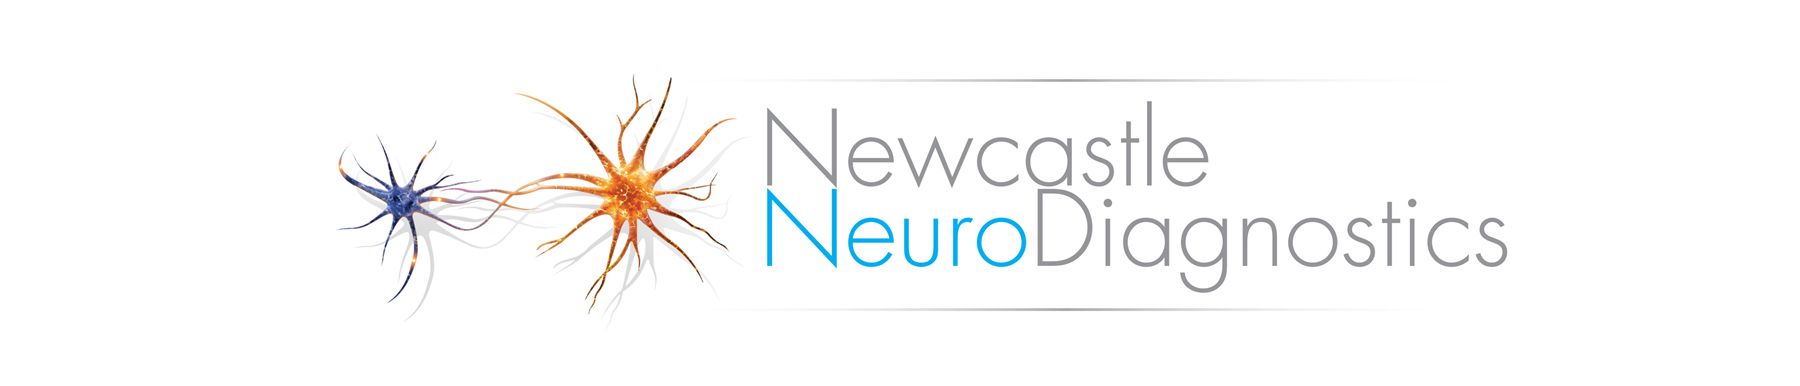 Newcastle Neuro Diagnostics Logo on white background isolated